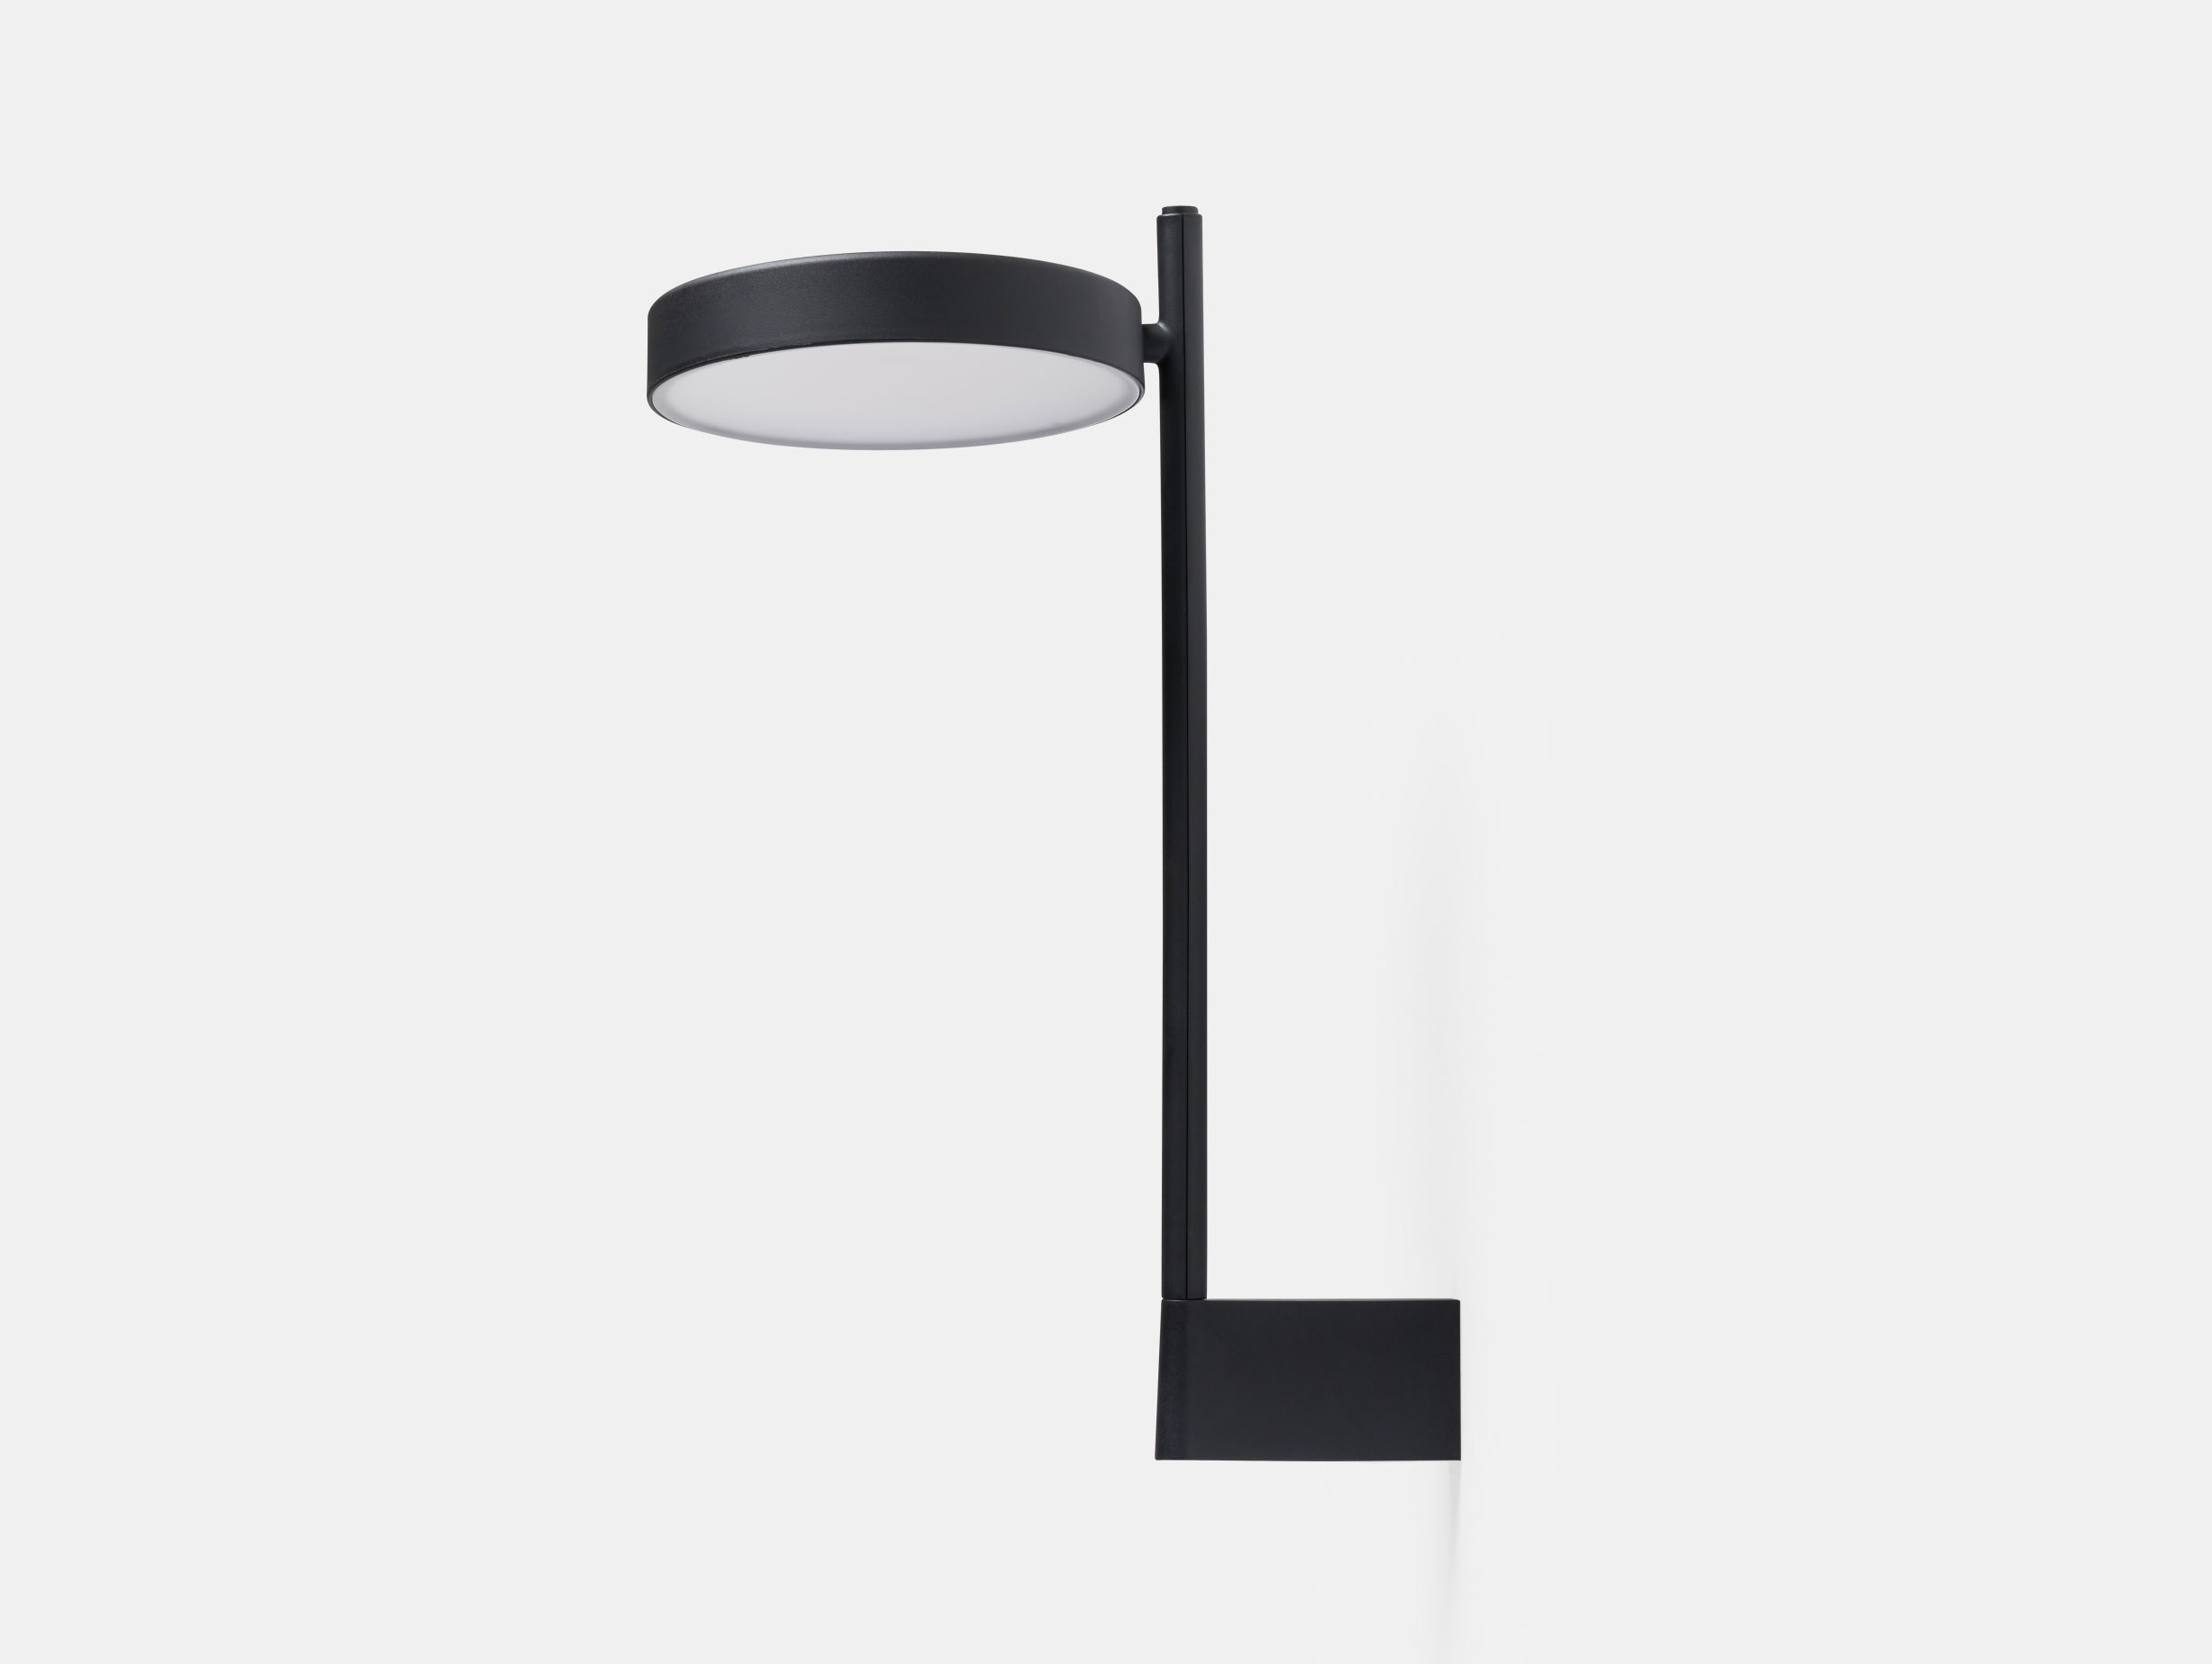 W182 Pastille Wall Lamp image 2